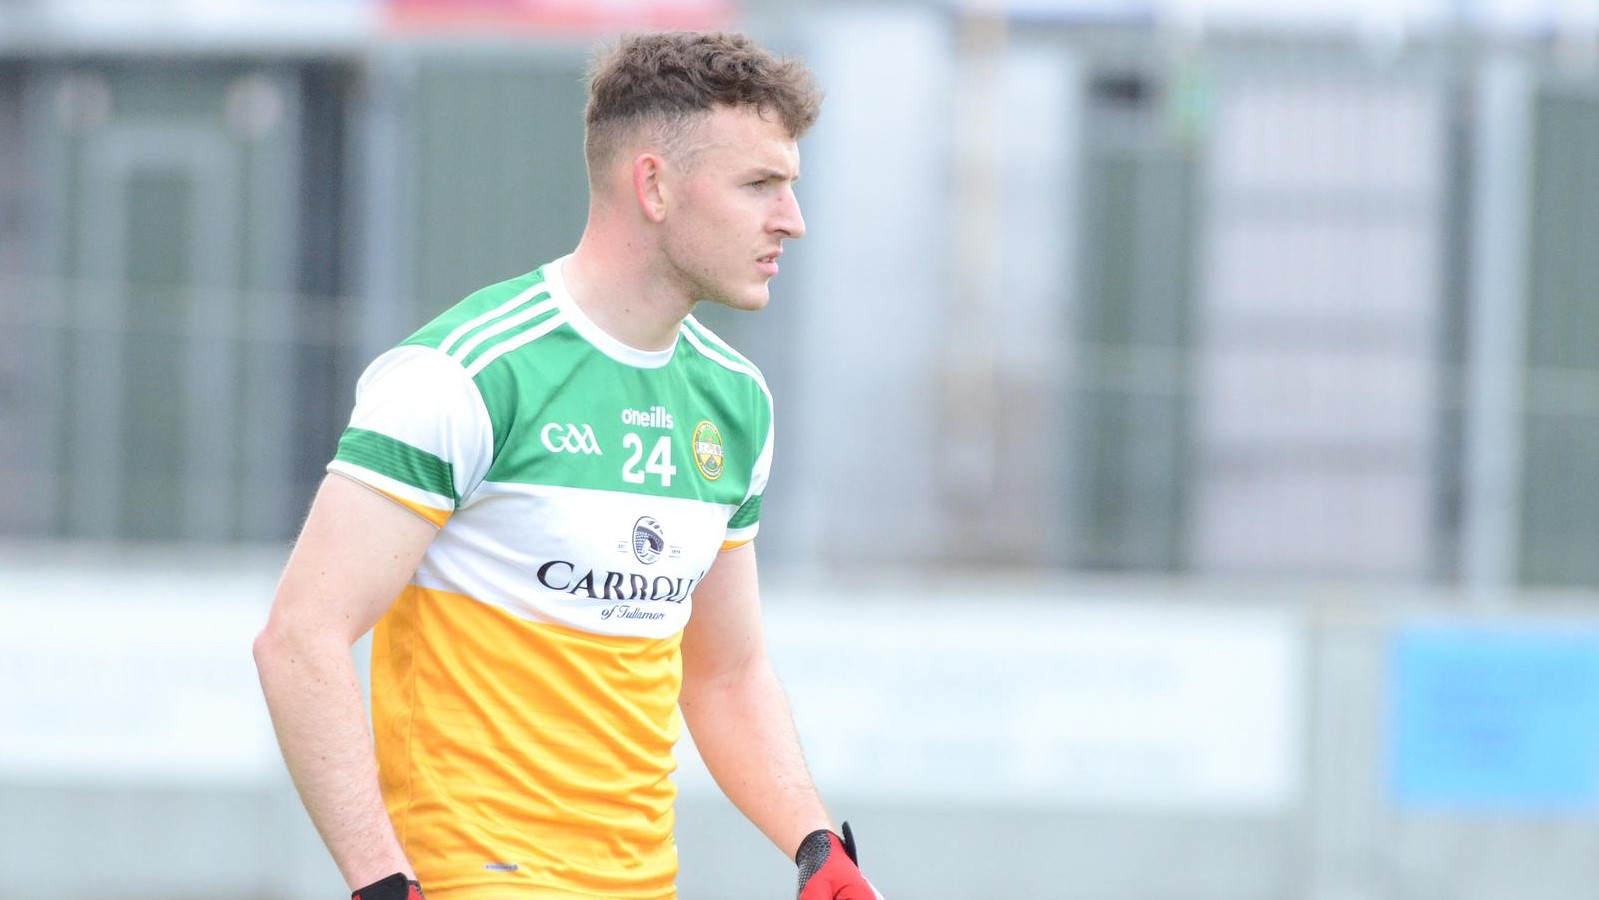 Offaly Top The Table & Progress To Semi-Finals